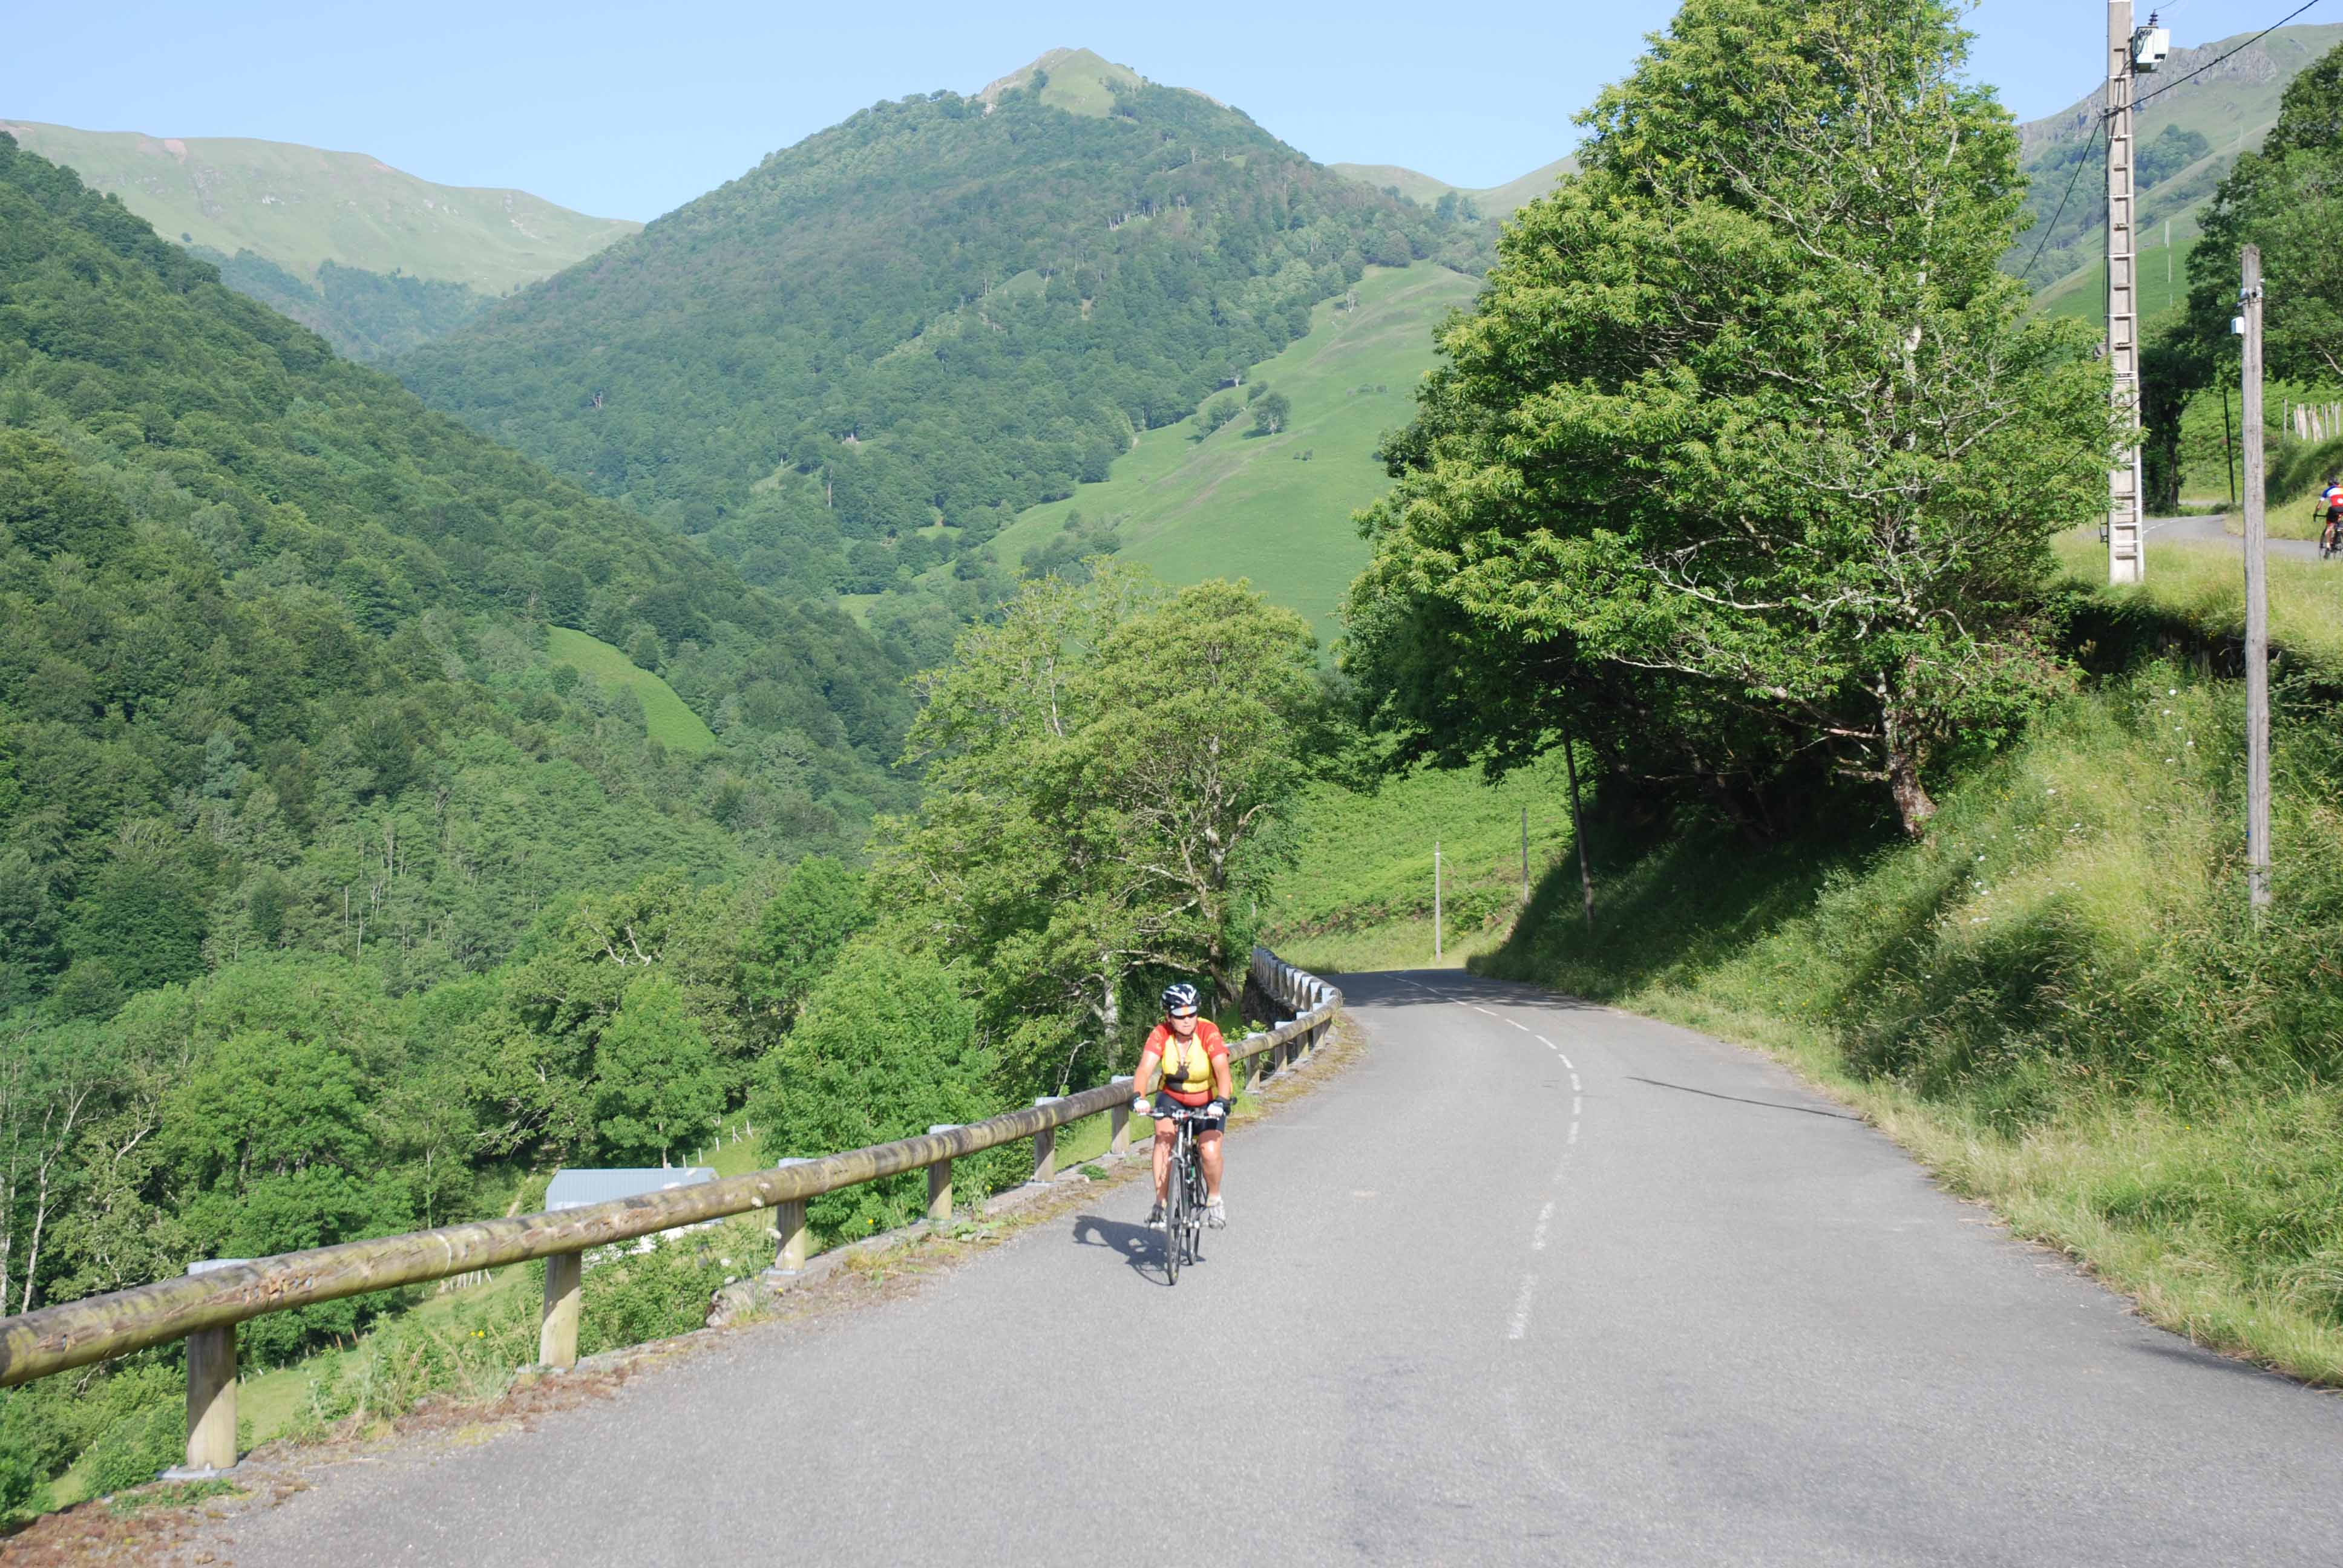 A typical climb in the Pyrenees. No traffic and good surfaces.